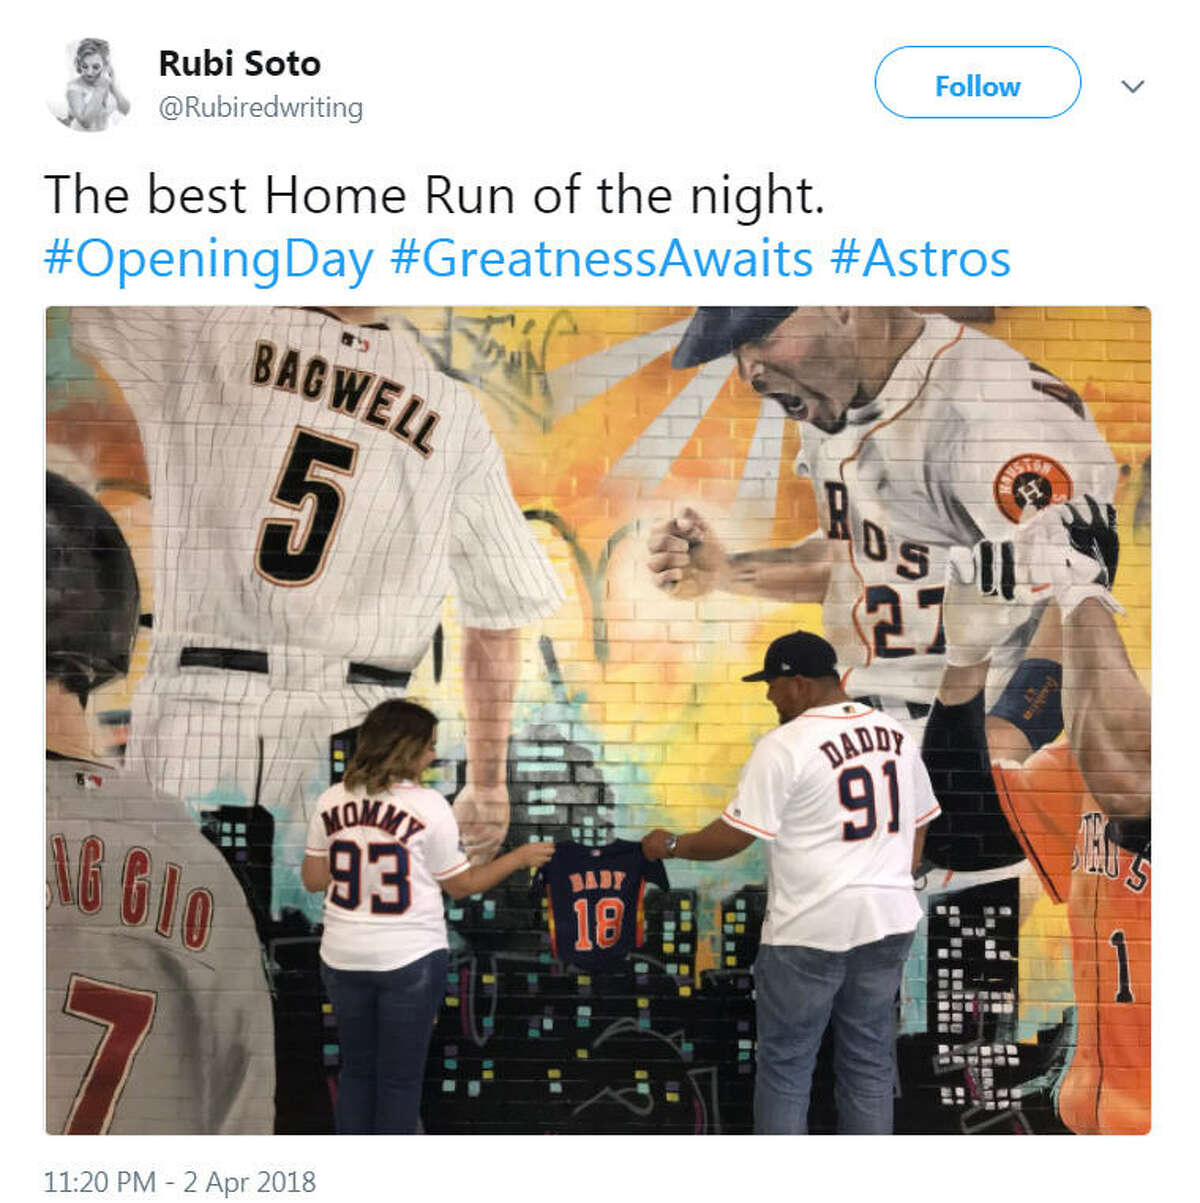 Fans celebrated the Astros first home game of the season by posting pictures of their visit to Minute Maid stadium on March 2, 2018.